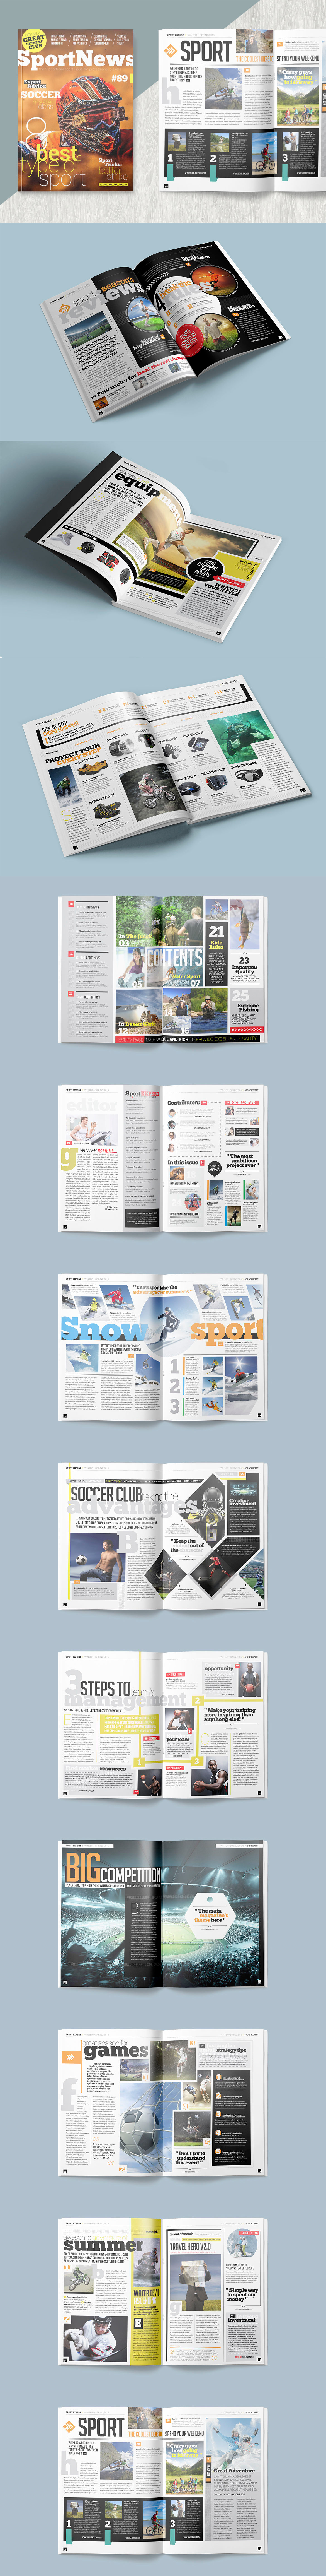 Magazine Template InDesign INDD - 25 Pages, 3 Magazine Covers ...